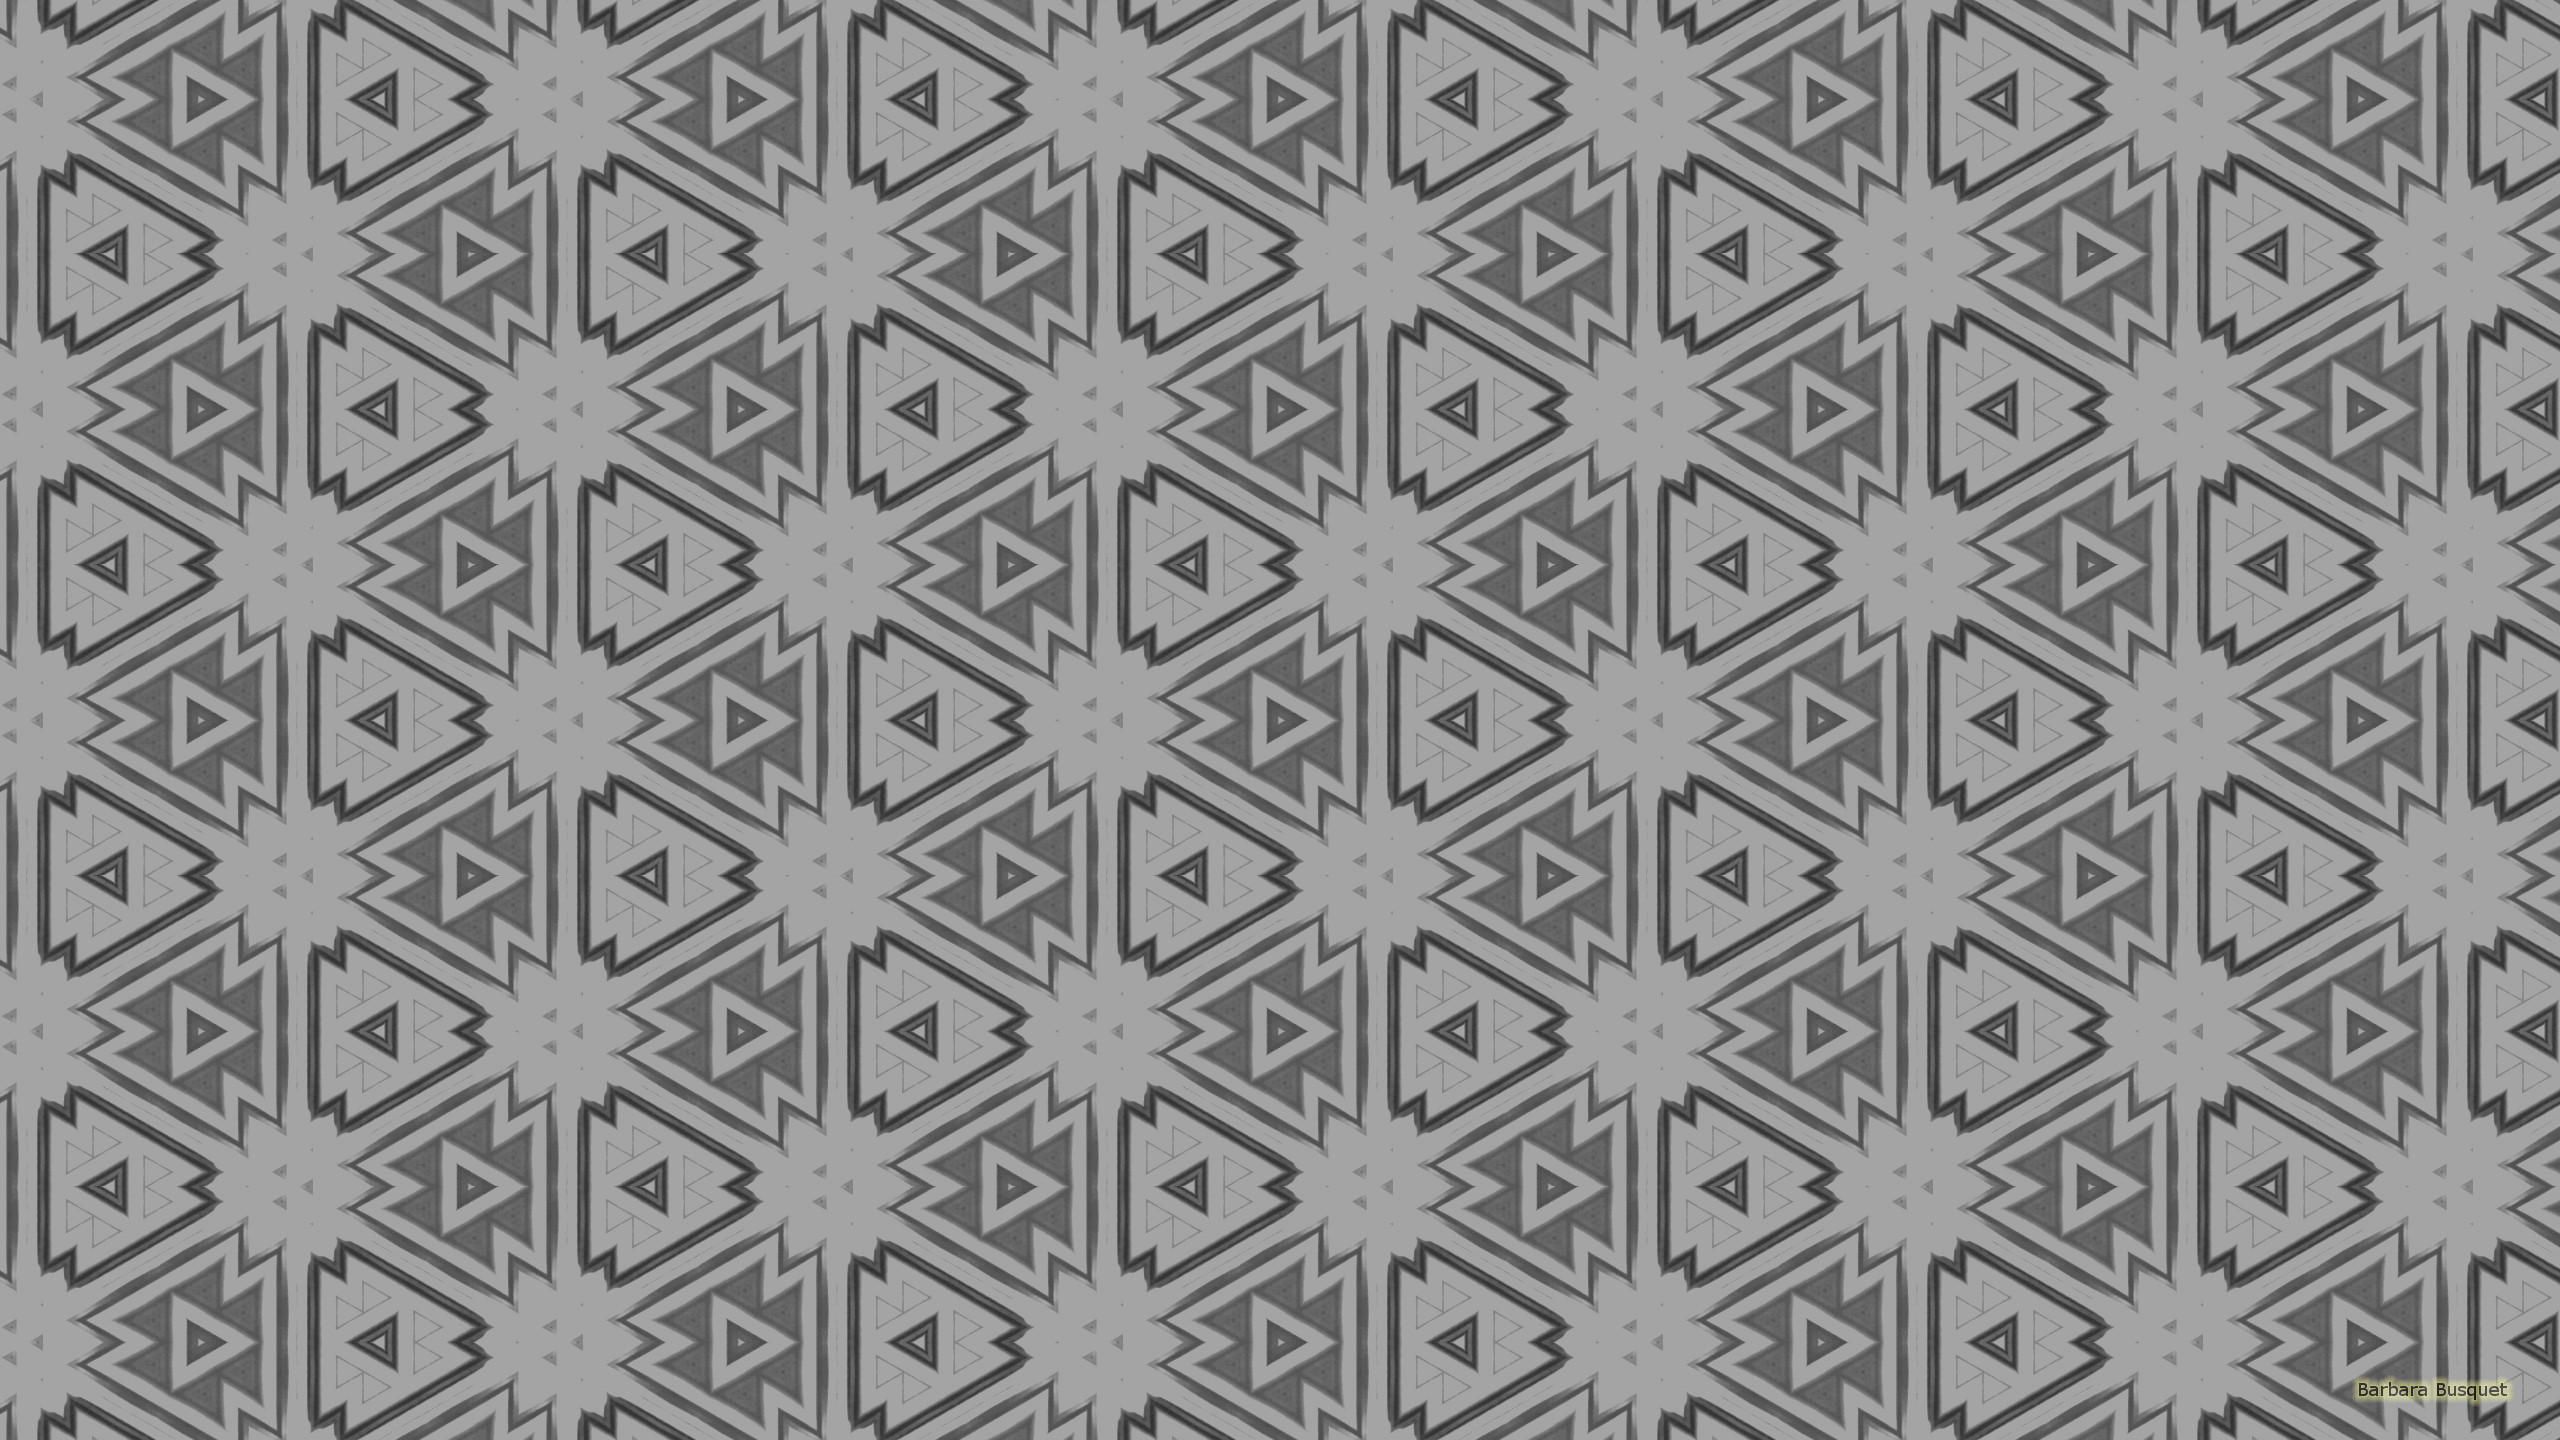 Light and dark gray pattern wallpaper